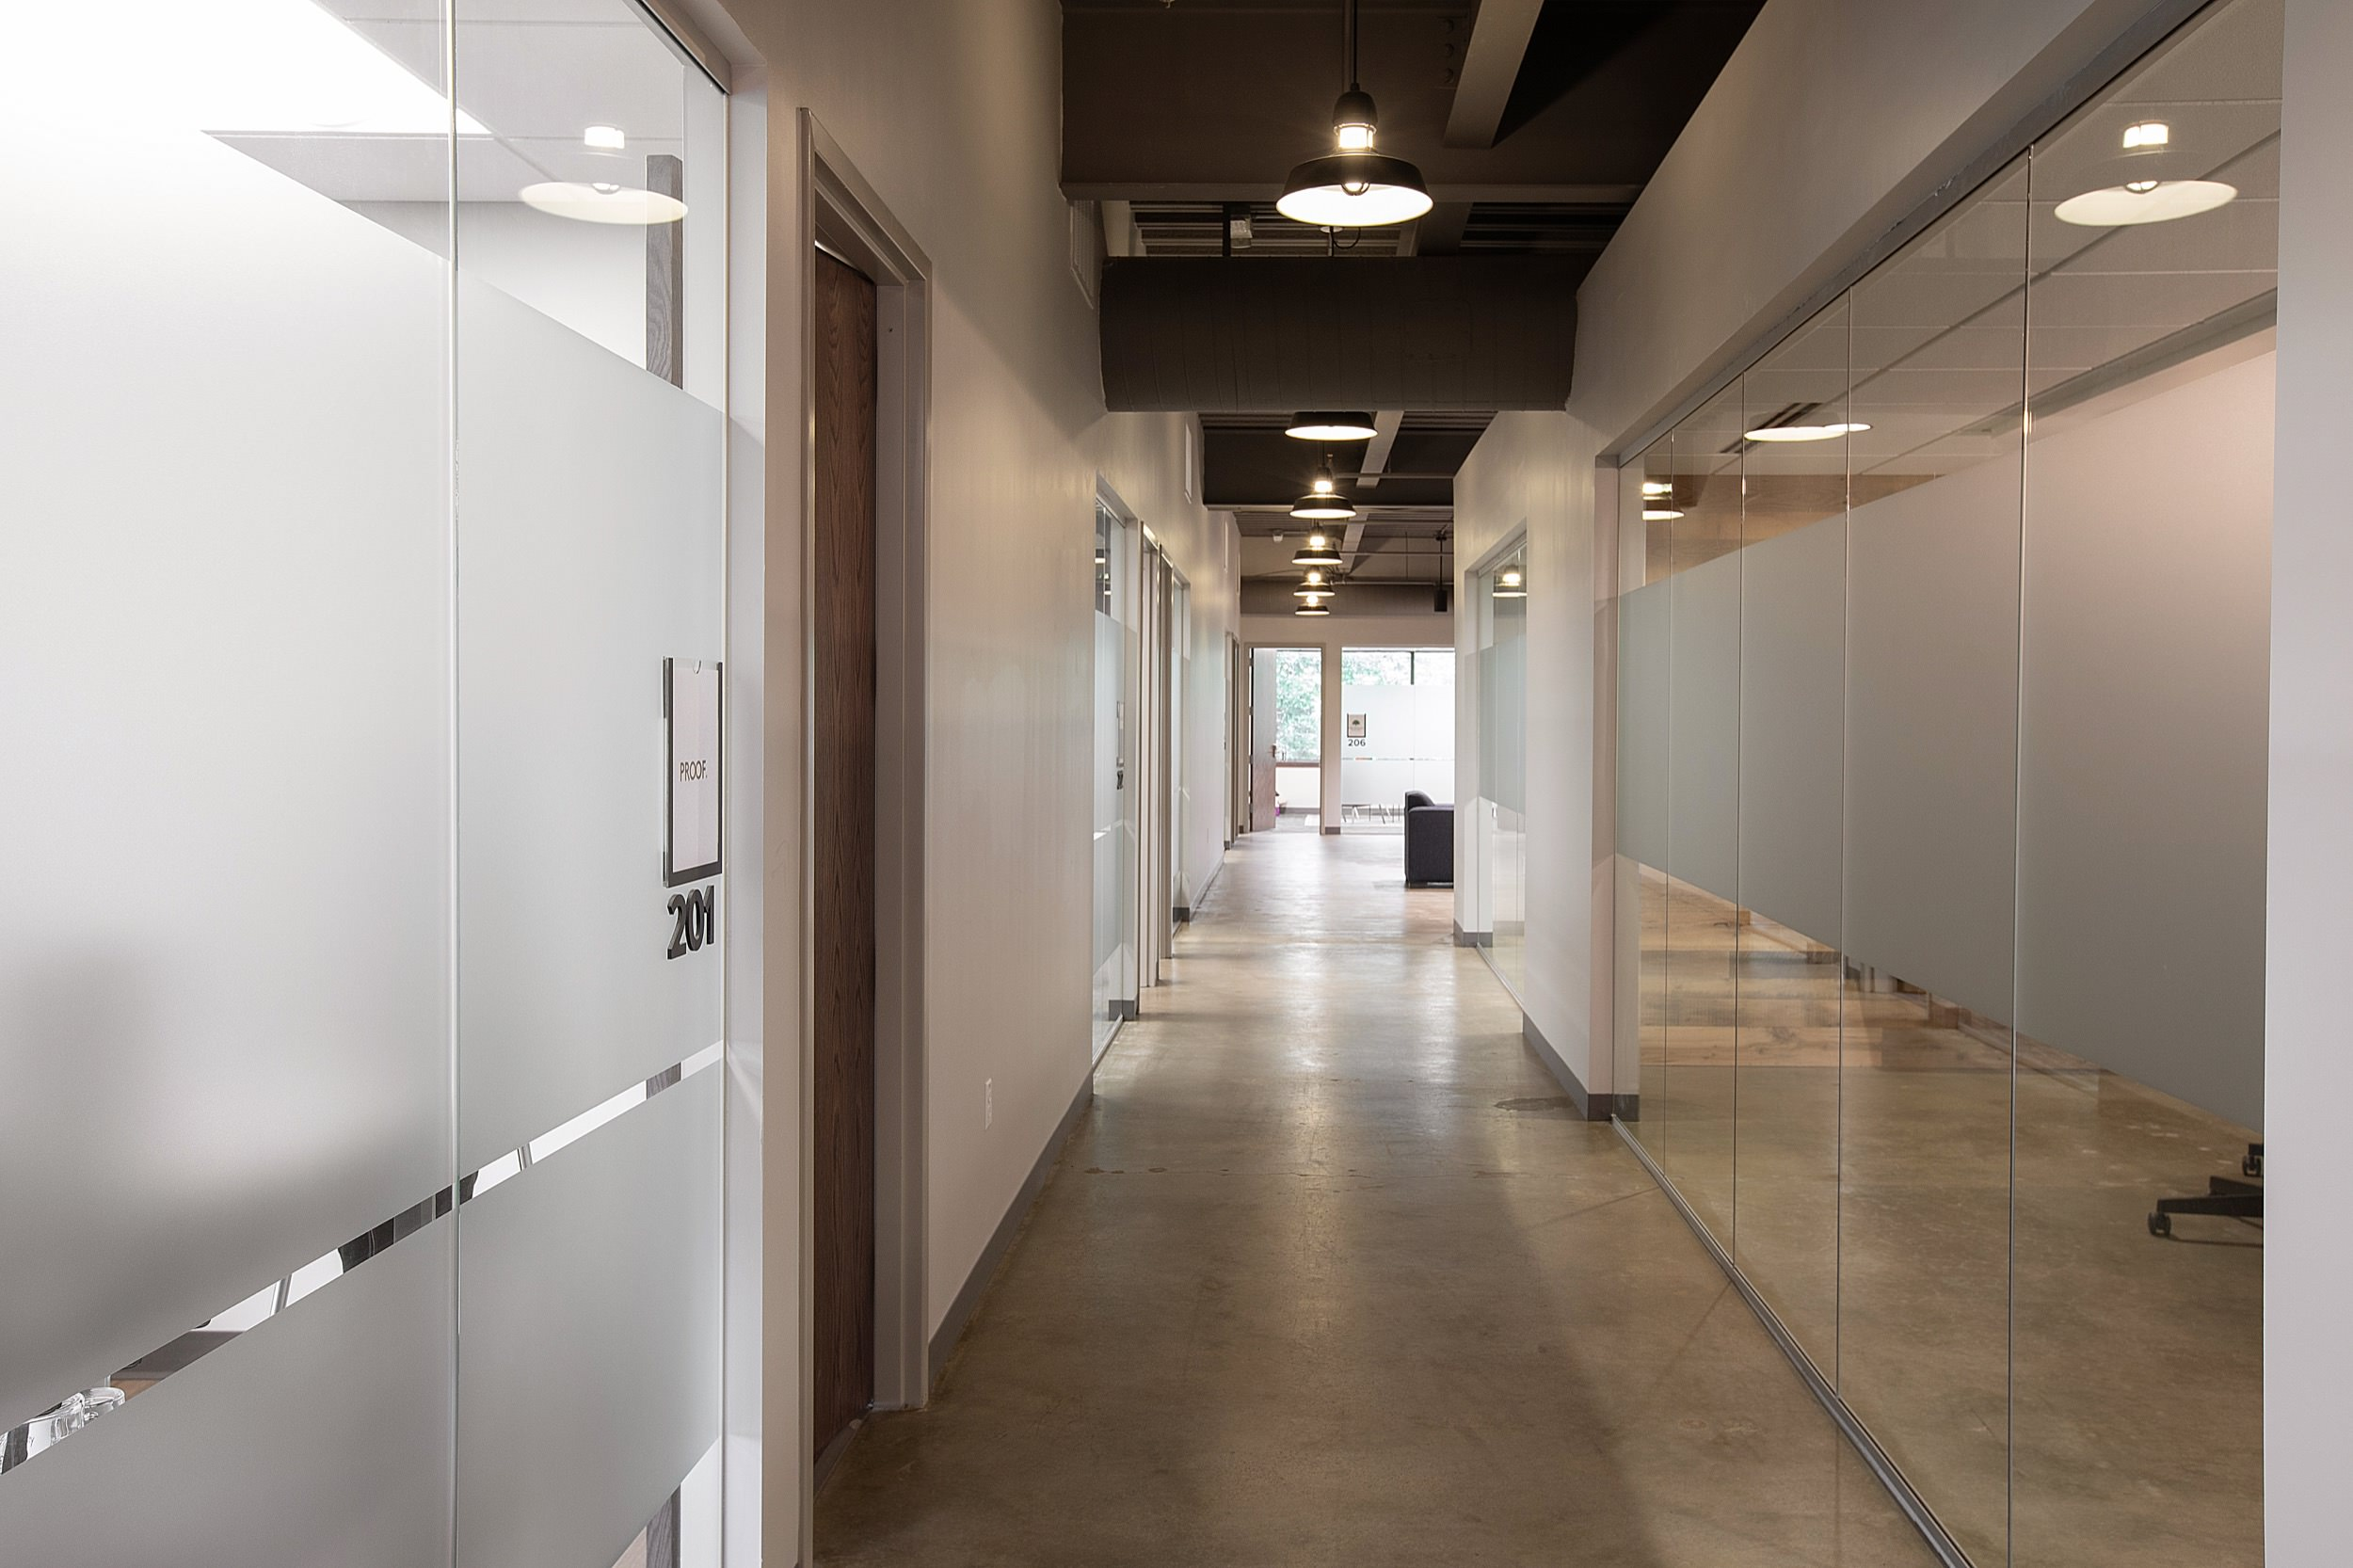 Office spaces and hallway at Edison Spaces